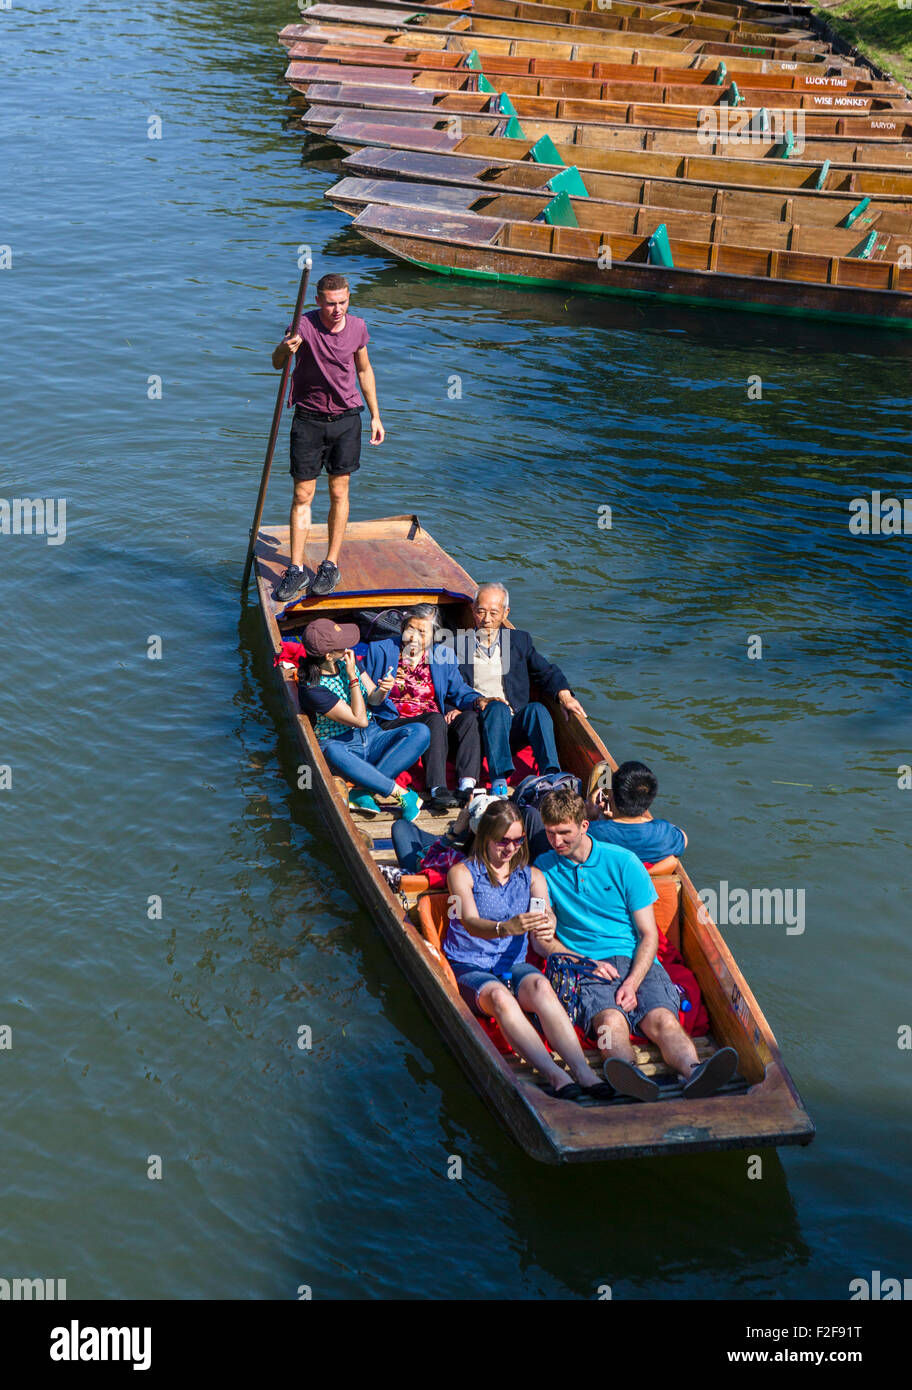 Tourists on a punt trip along the River Cam viewed from the Garret Hostel Bridge, The Backs, Cambridge, England, - Stock Image